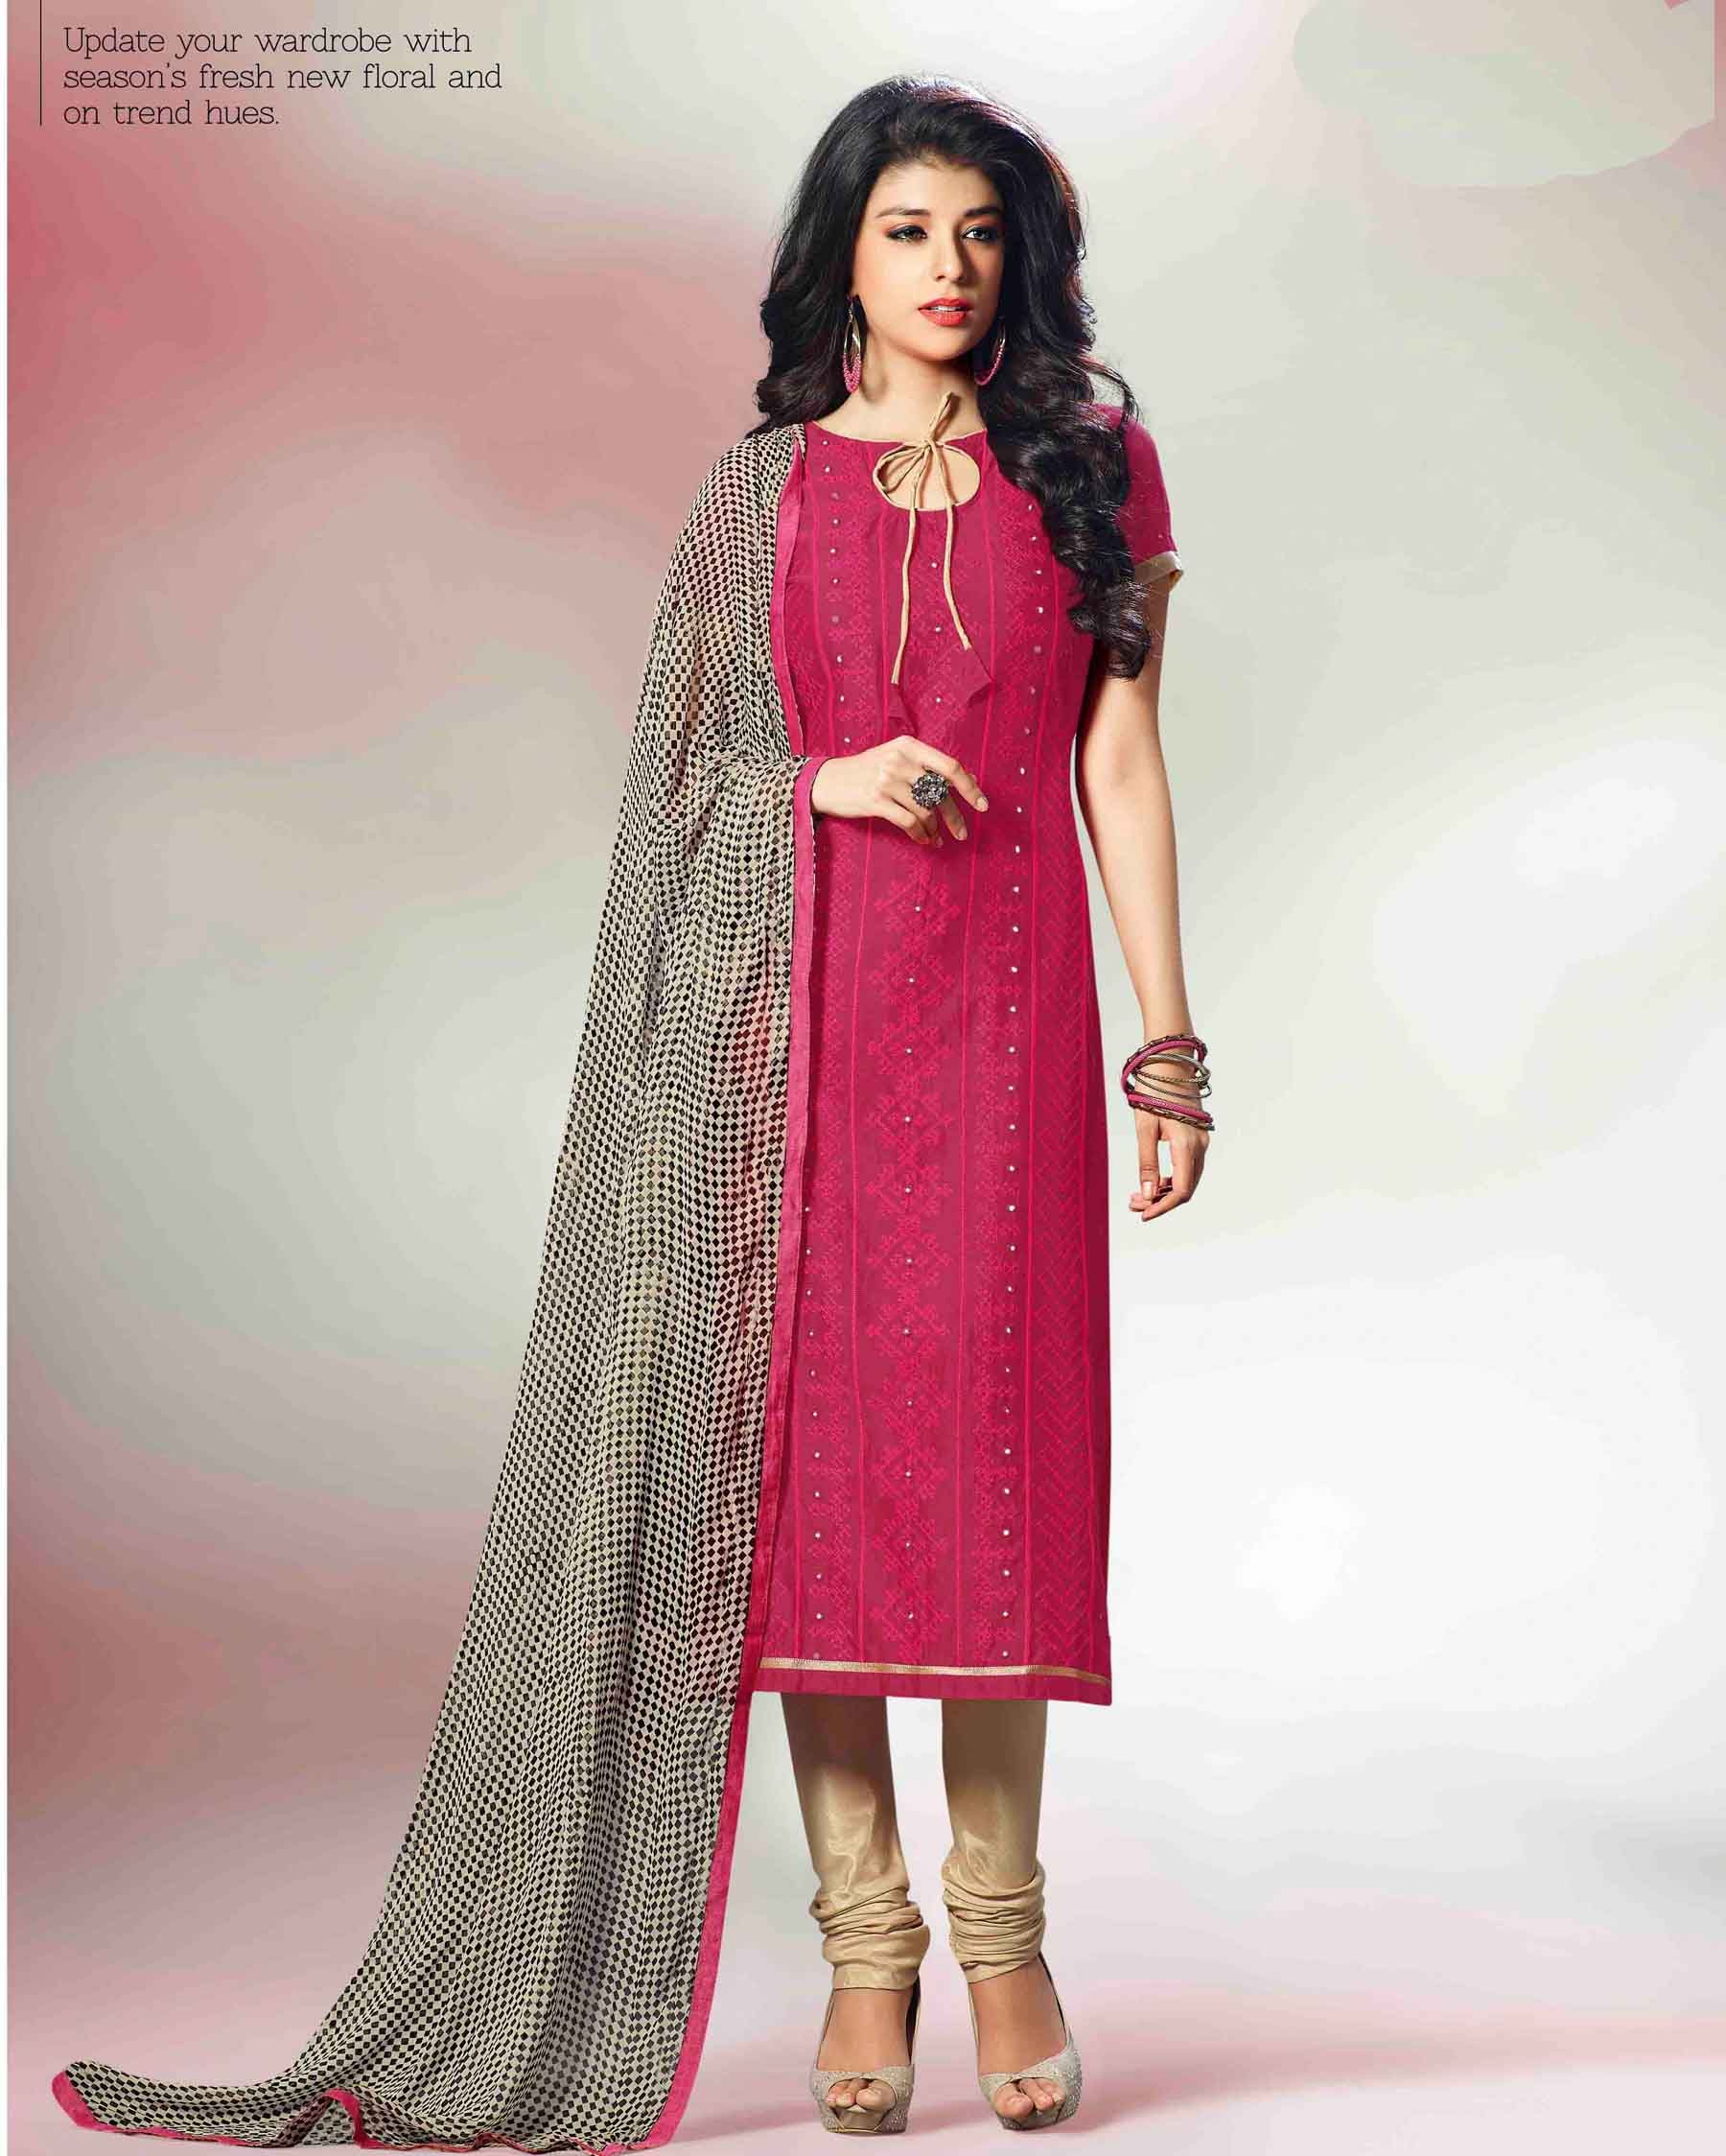 fd15a42289 Maroon luxuriant Embroidered Chanderi Silk Salwar Suits for women(Semi  Stitched) Fabric  Chanderi Silk Work  Embroidered Type  Salwar Suits for  women(Semi ...